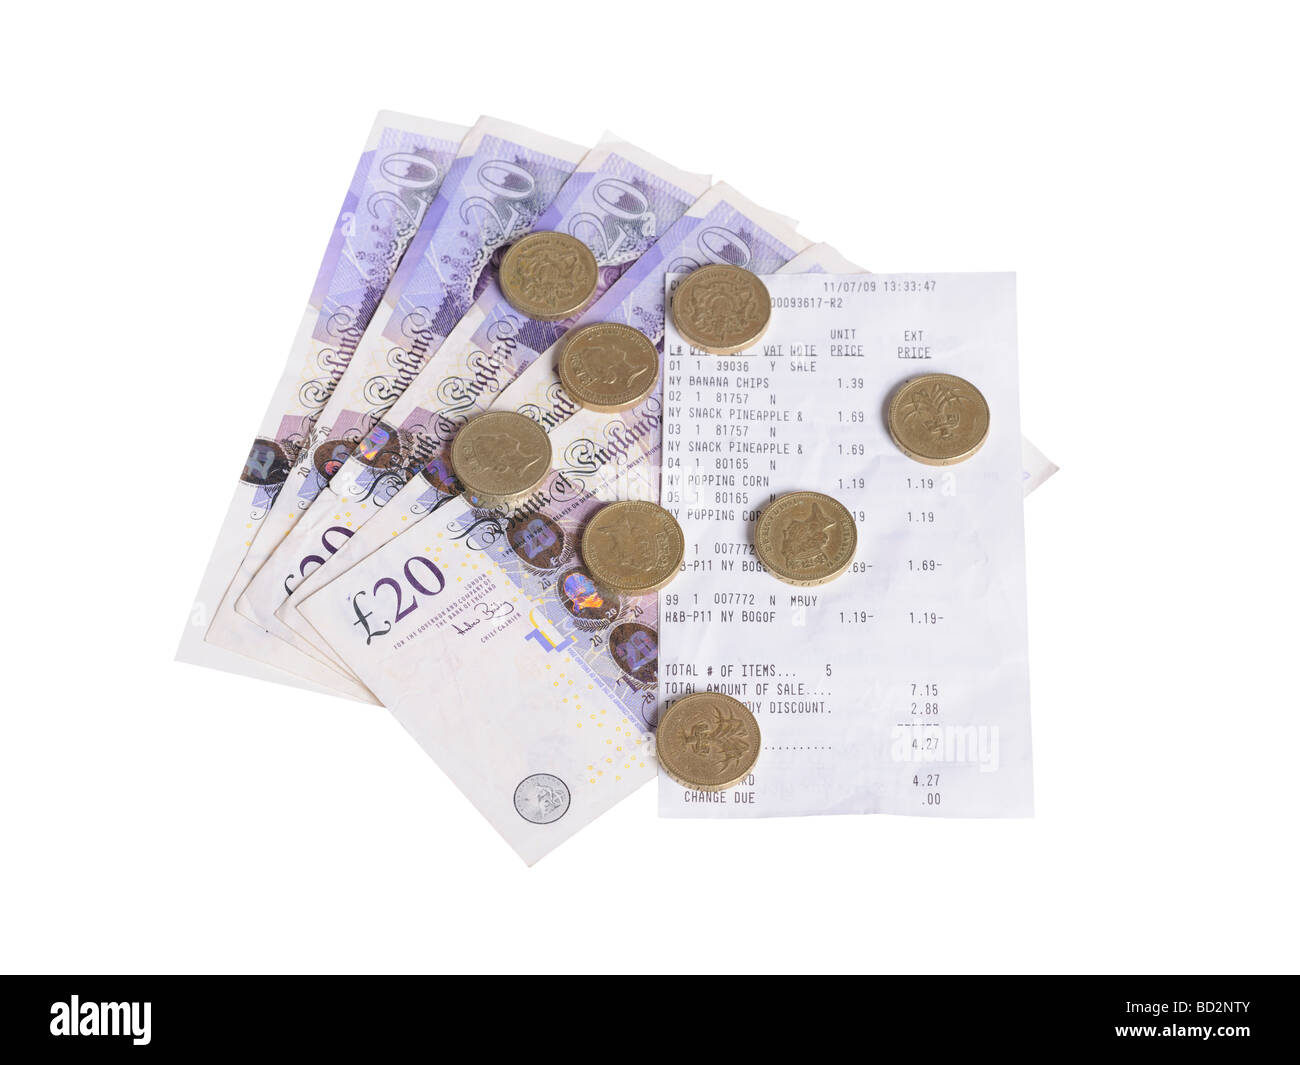 20 pound notes coins bill receipt - Stock Image